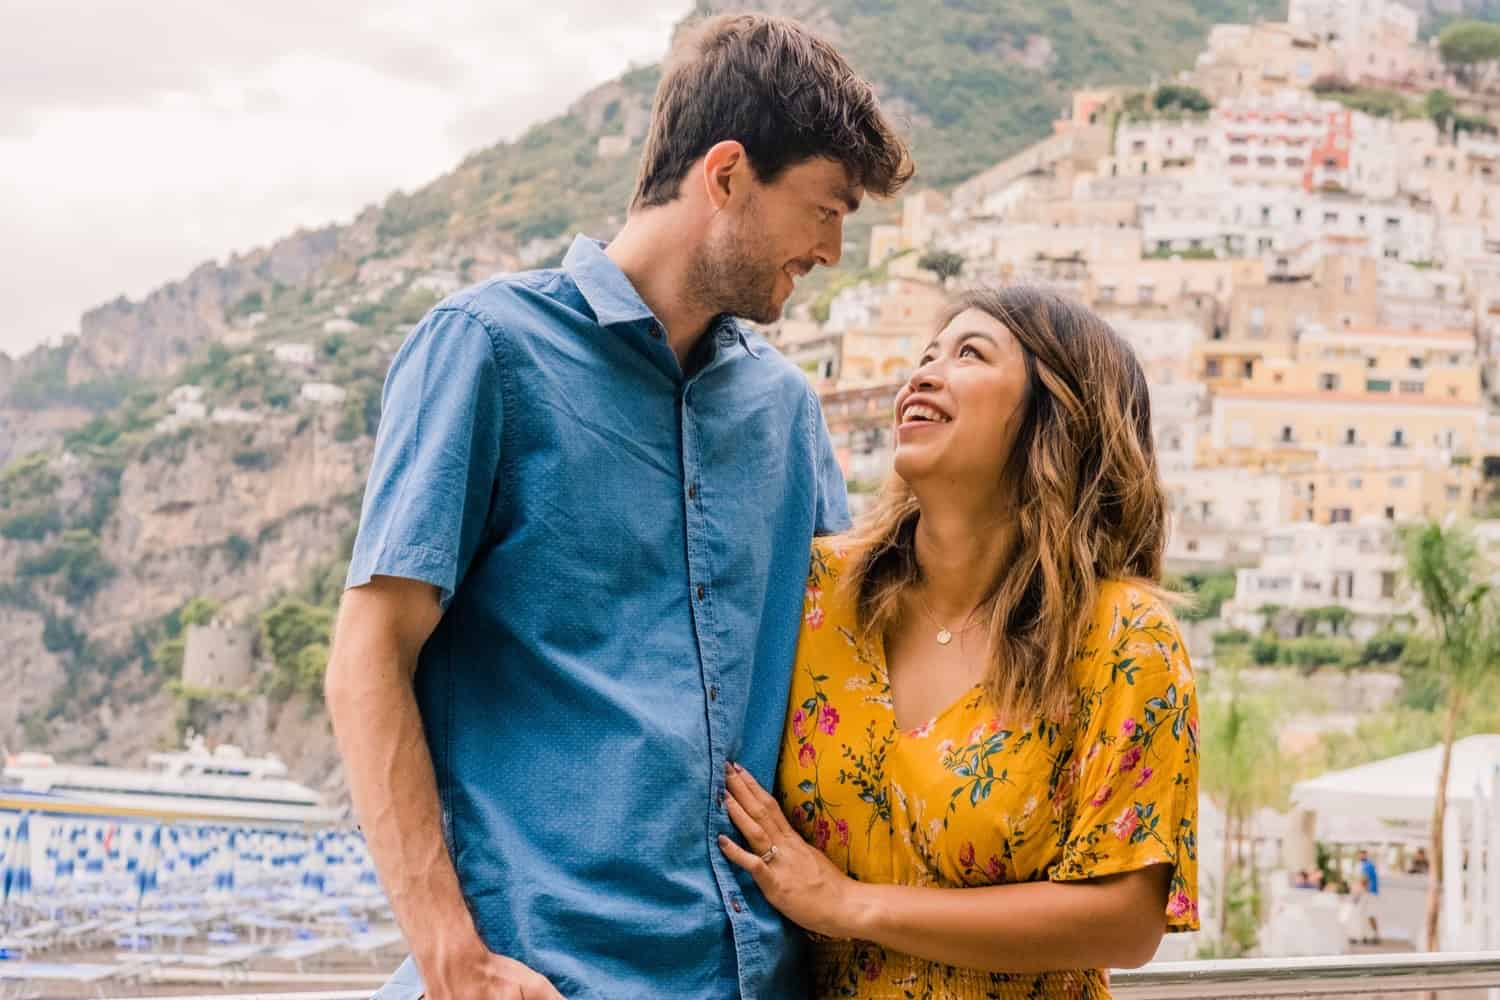 Honeymoon adventure on Italy's Amalfi Coast